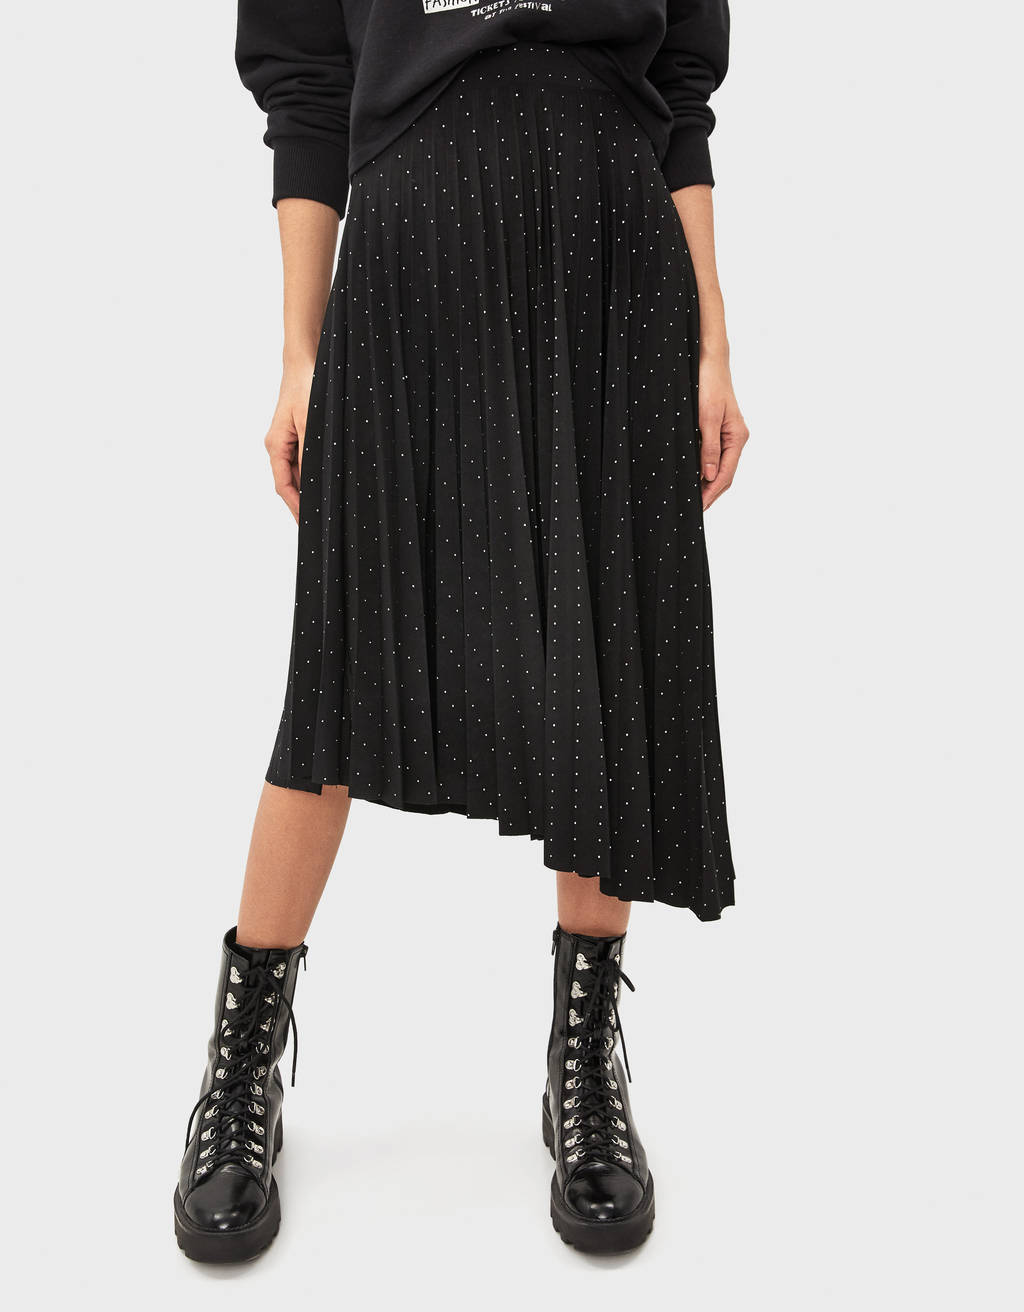 Asymmetric pleated skirt with polka dots